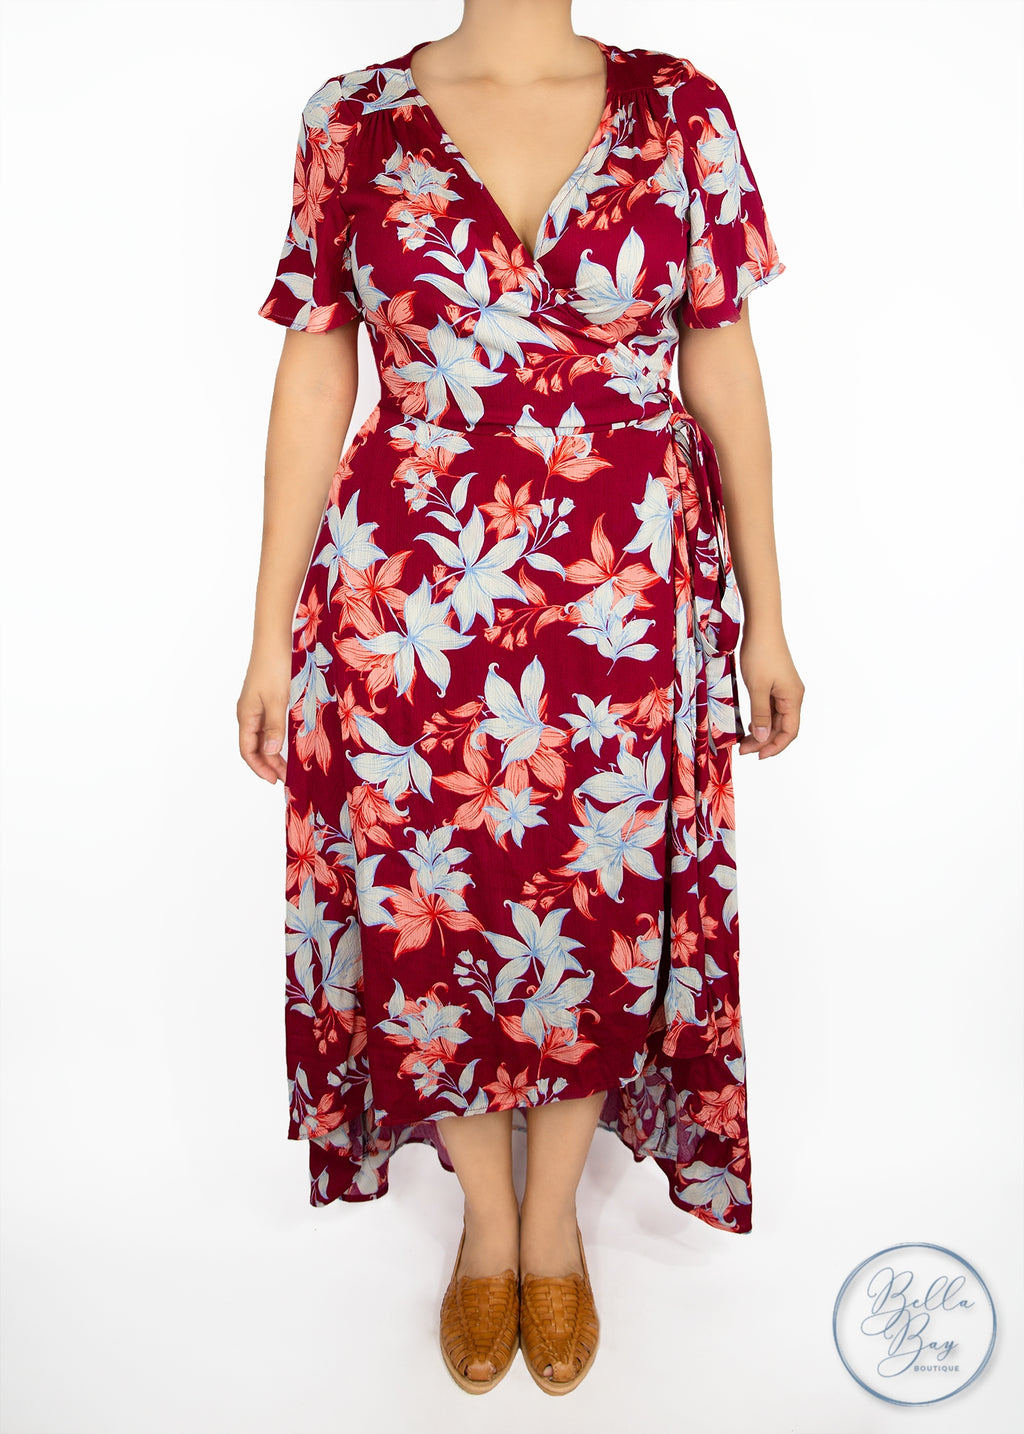 Paisley Raye Primrose Wrap Dress- Burgundy Floral (1X) - Paisley Raye with Bella Bay Boutique, shop now at  https://shopbellabay.com/ or locally in Newport Oregon